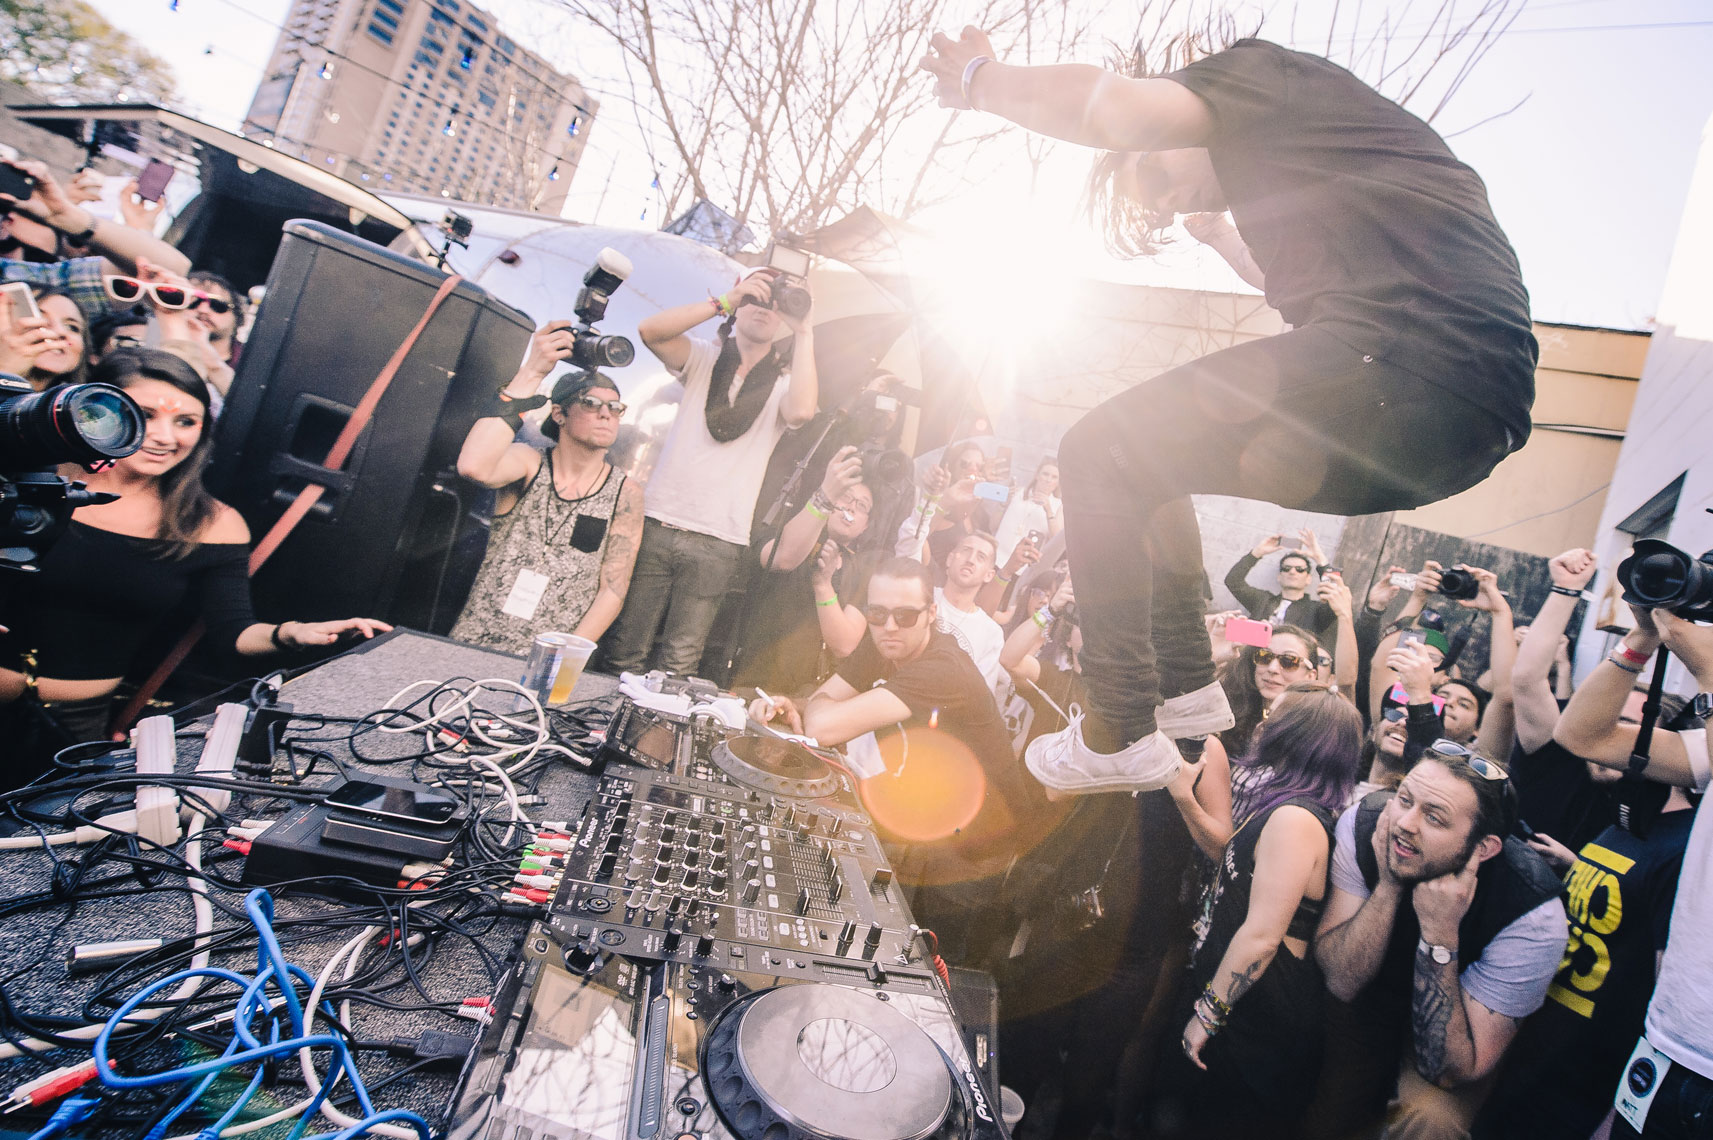 Skrillex-performs-at-Empire-Garage-during-SXSW-2014-2